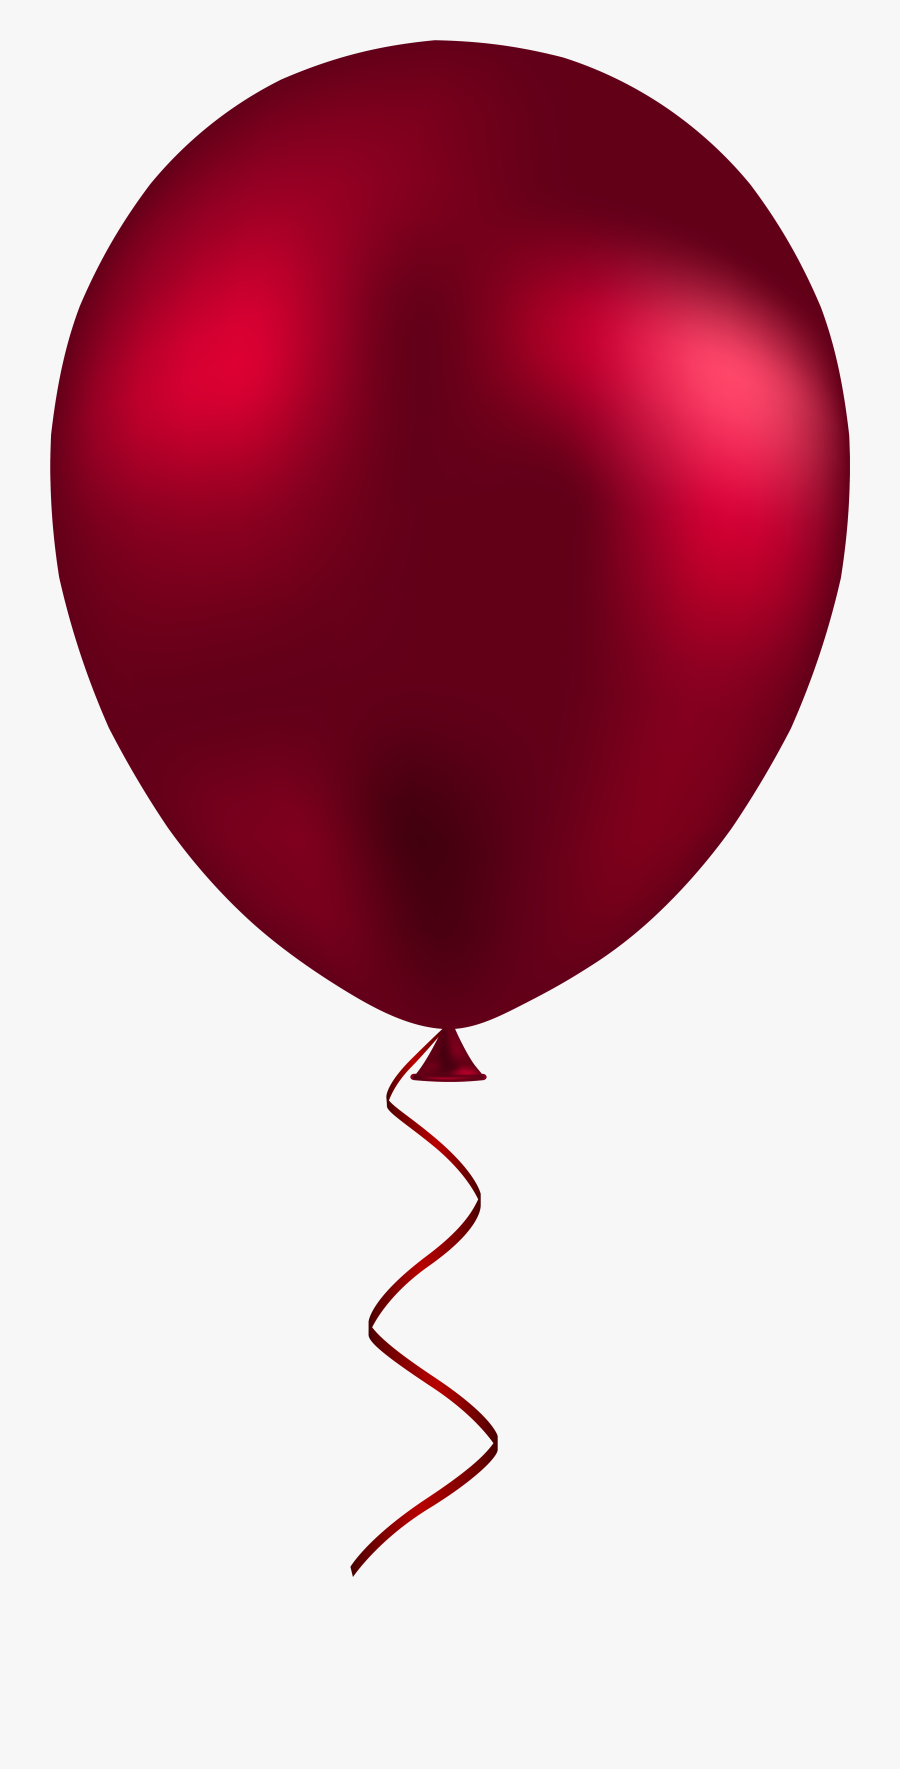 Red Balloon Png Clip Art - Balloon Png, Transparent Clipart